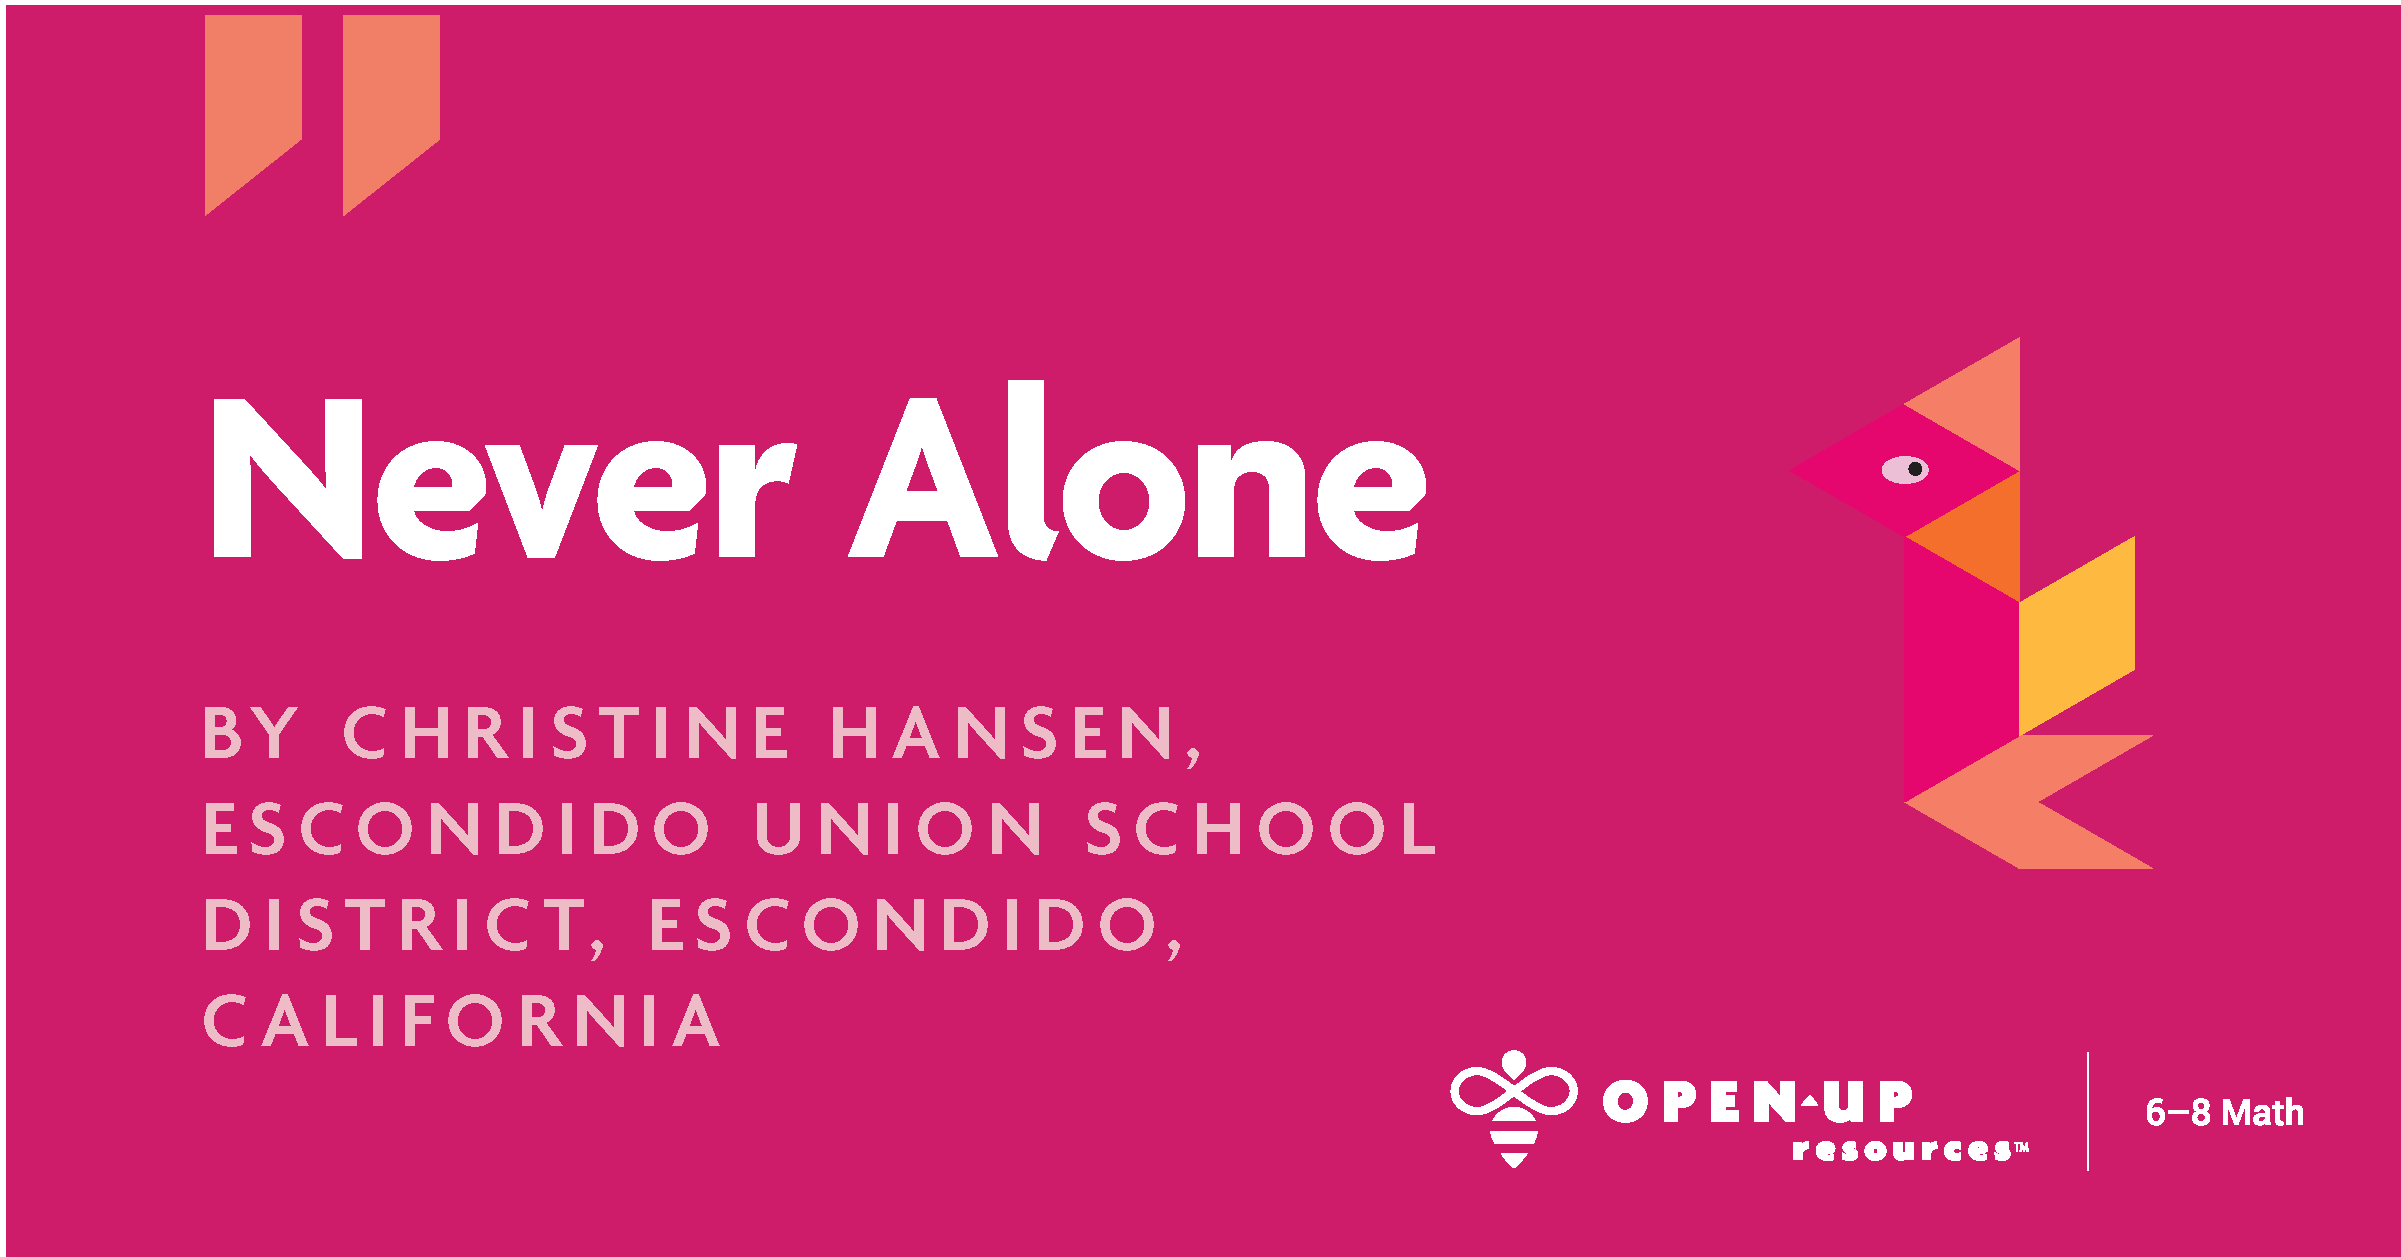 Never Alone, Pink